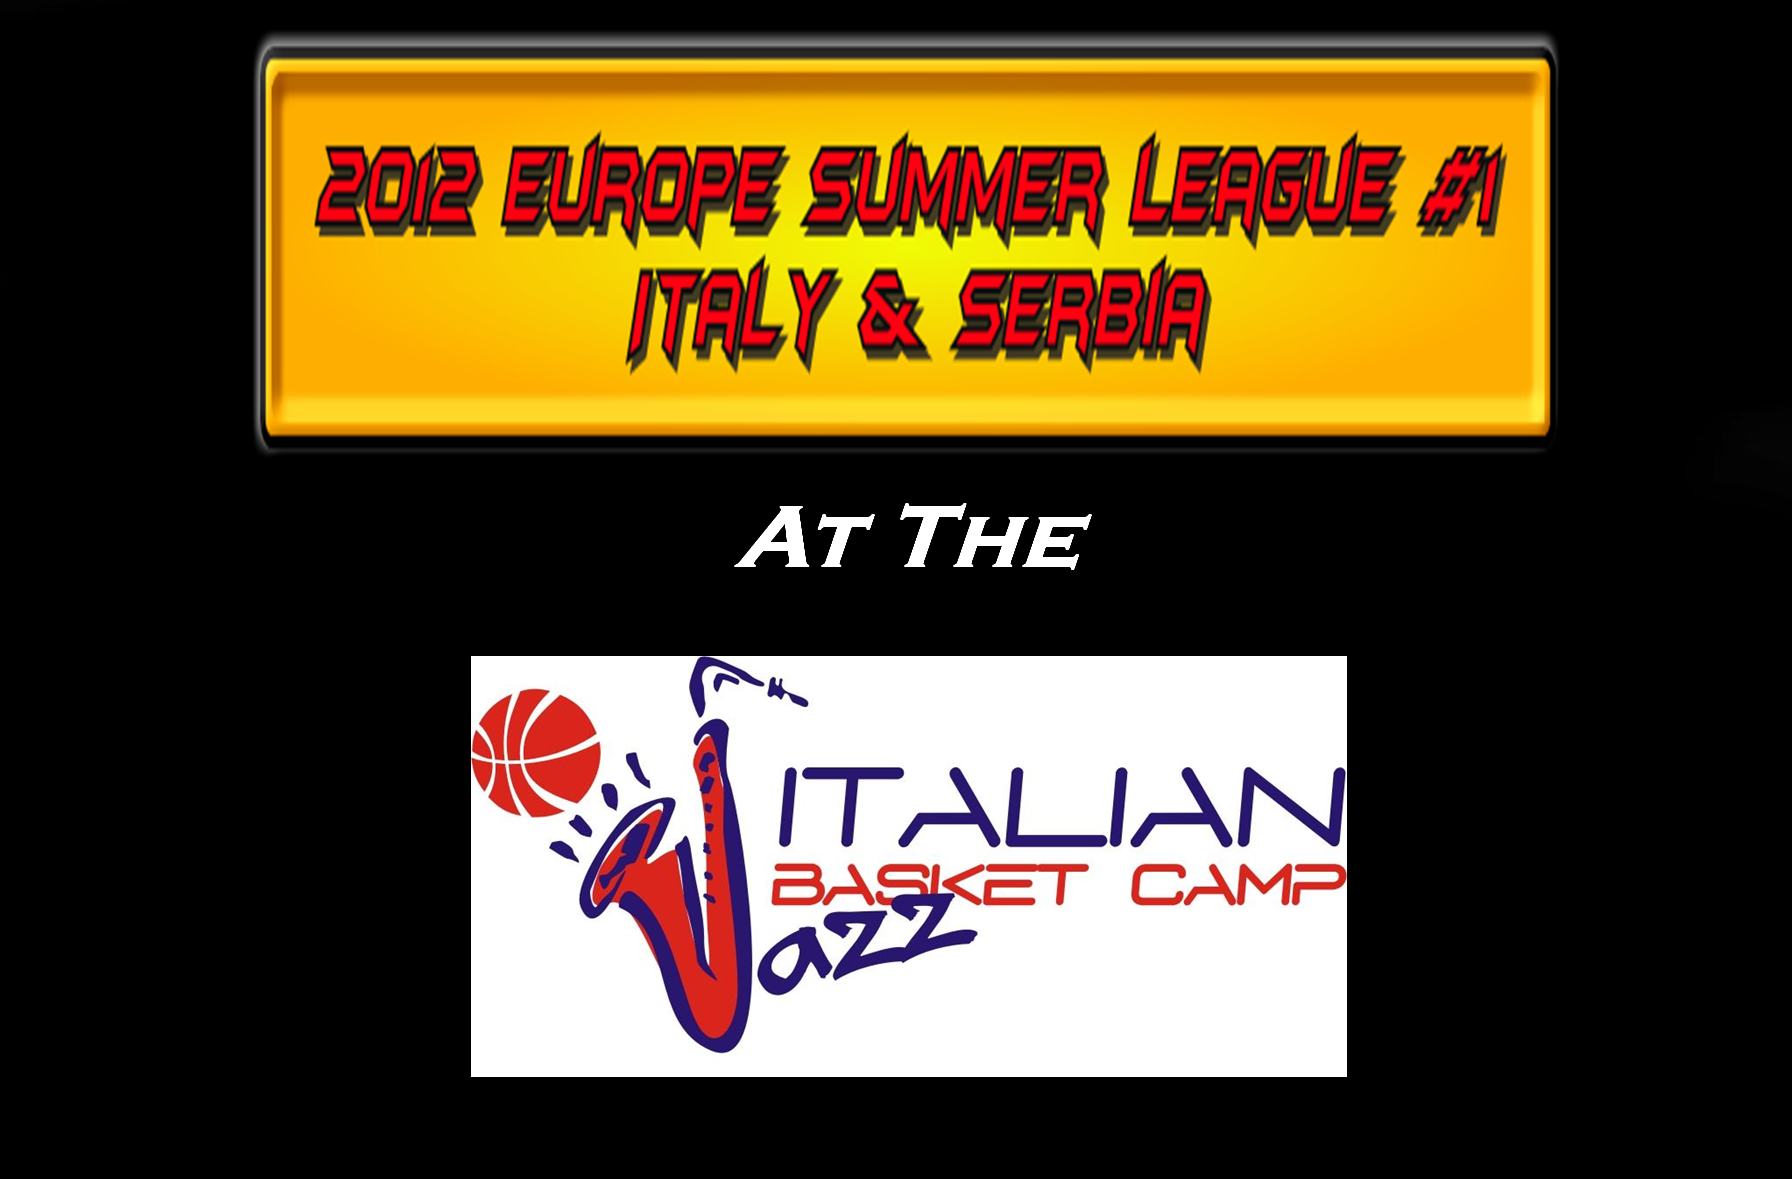 2012 Europe Summer League at The 2012 Italian Basket Jazz Camp